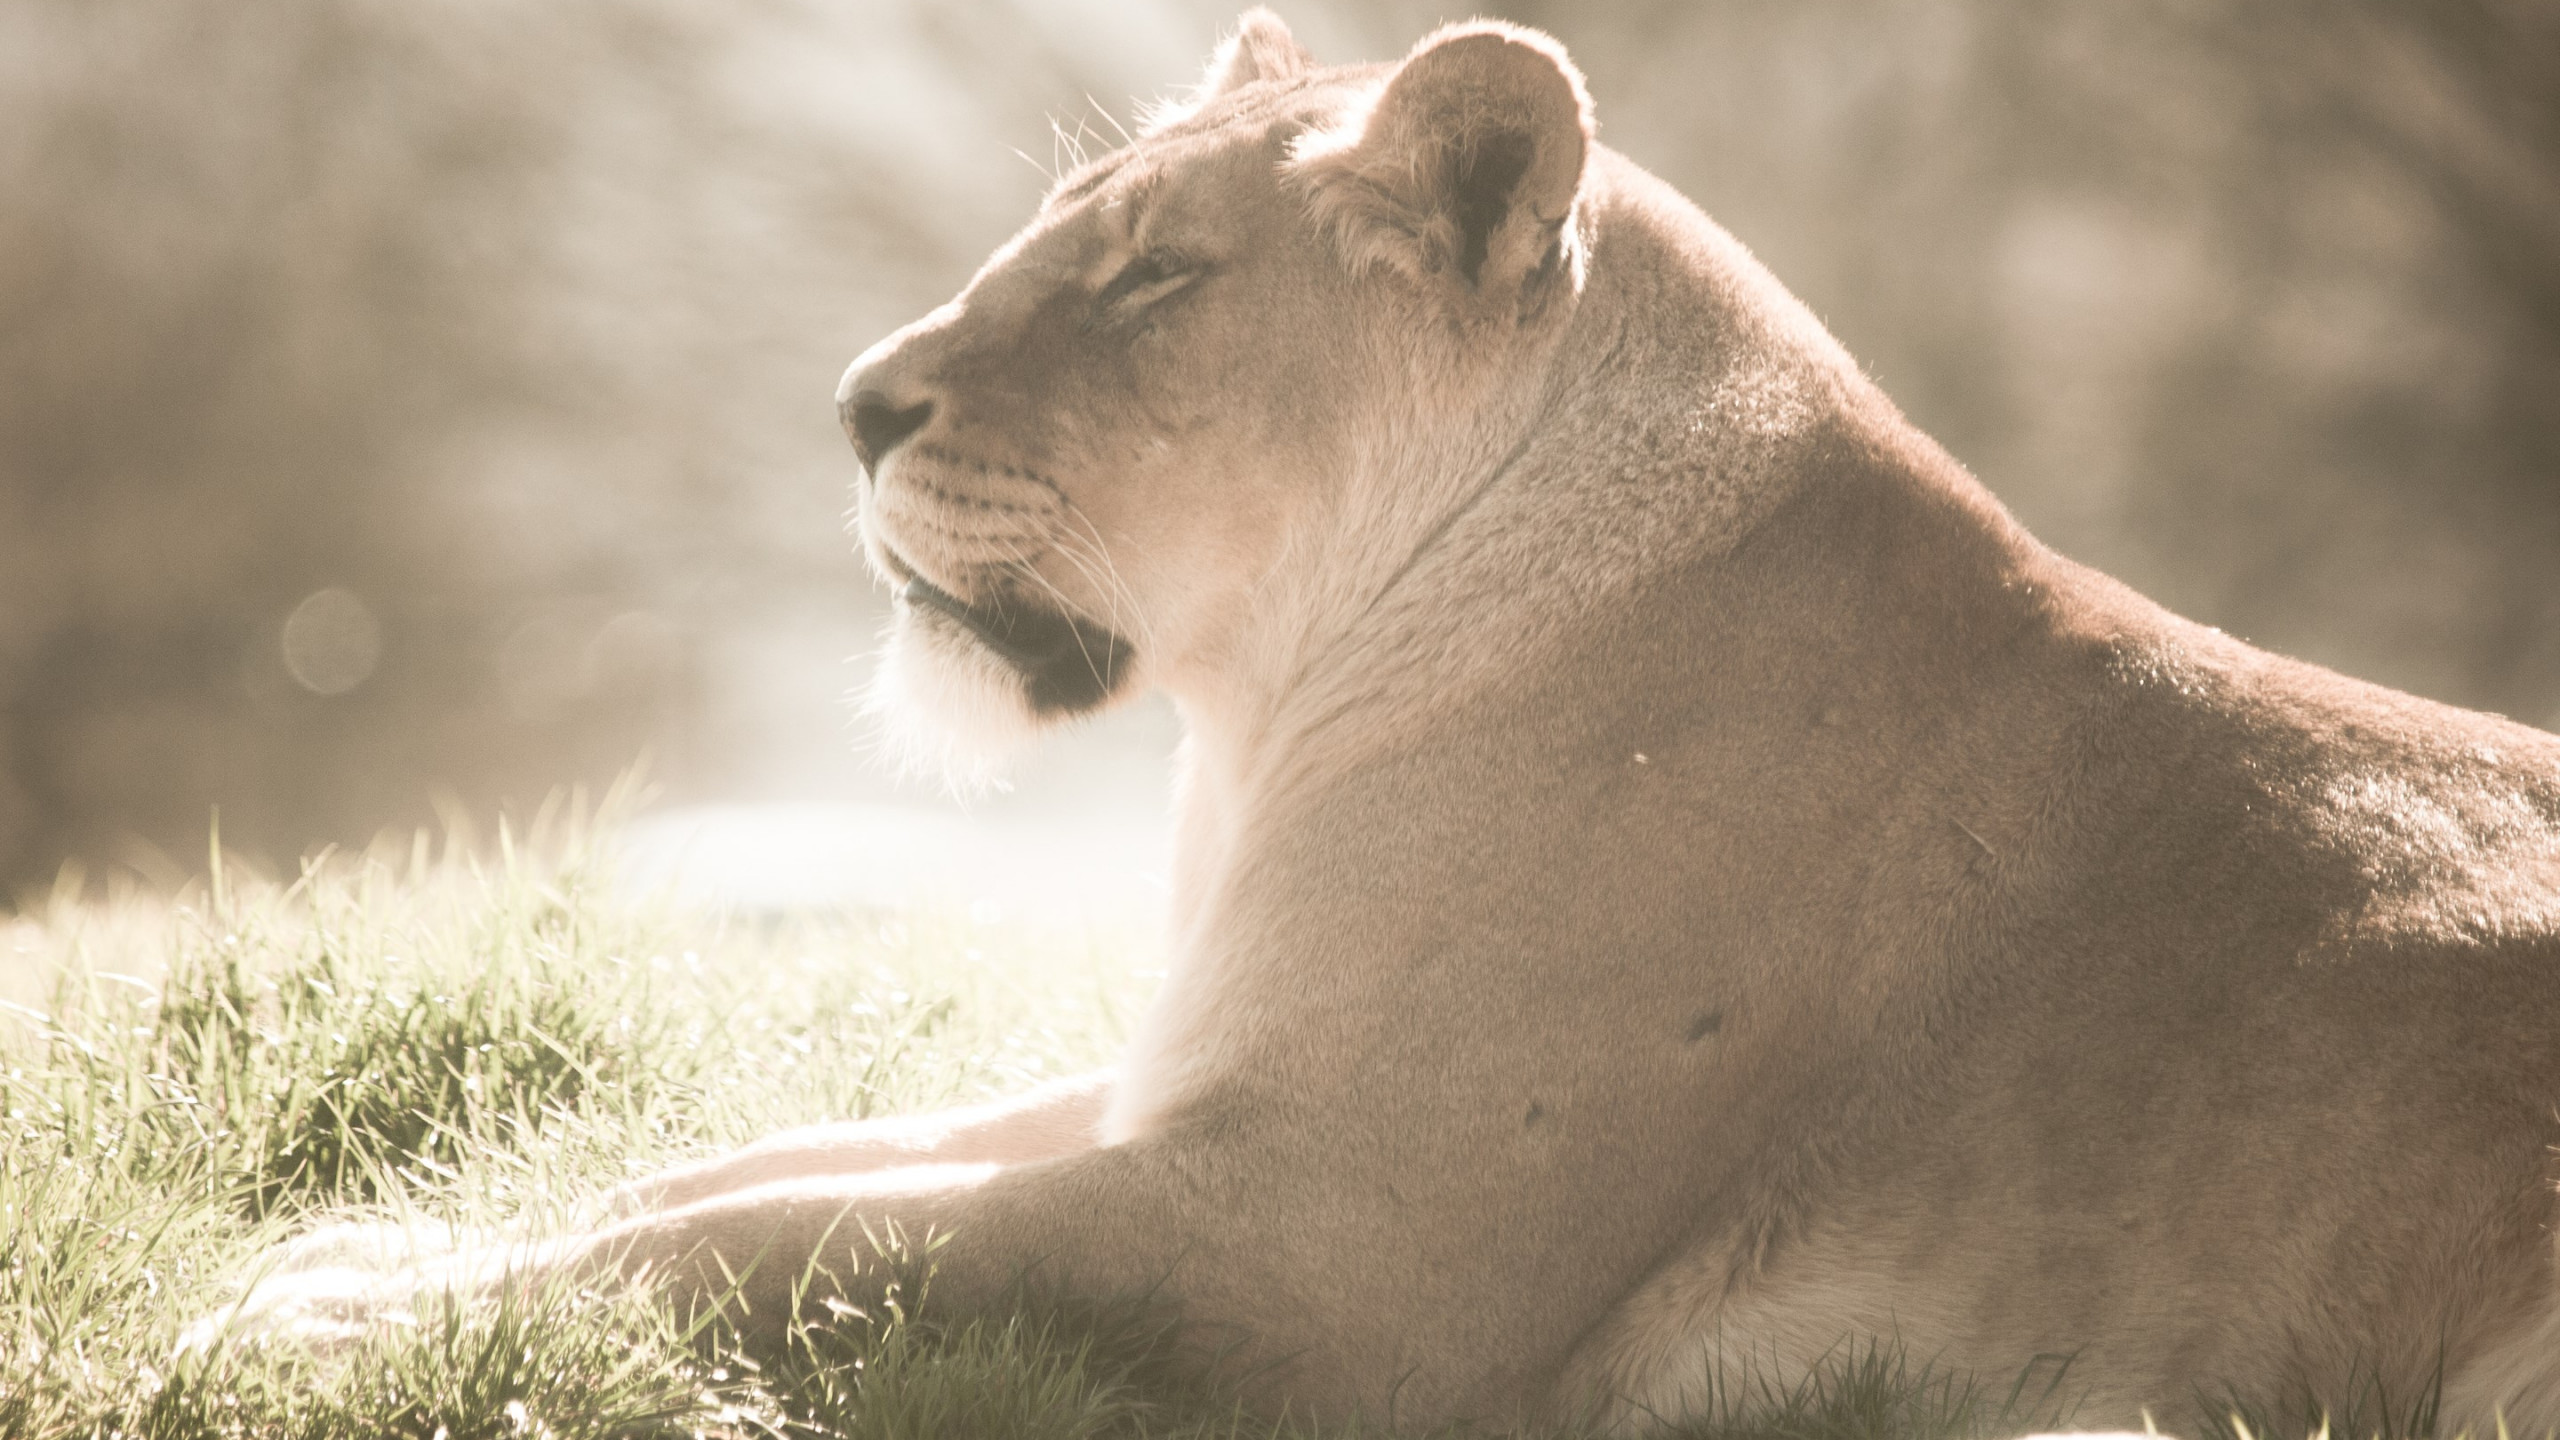 Lioness at Whipsnade Zoo wallpaper 2560x1440